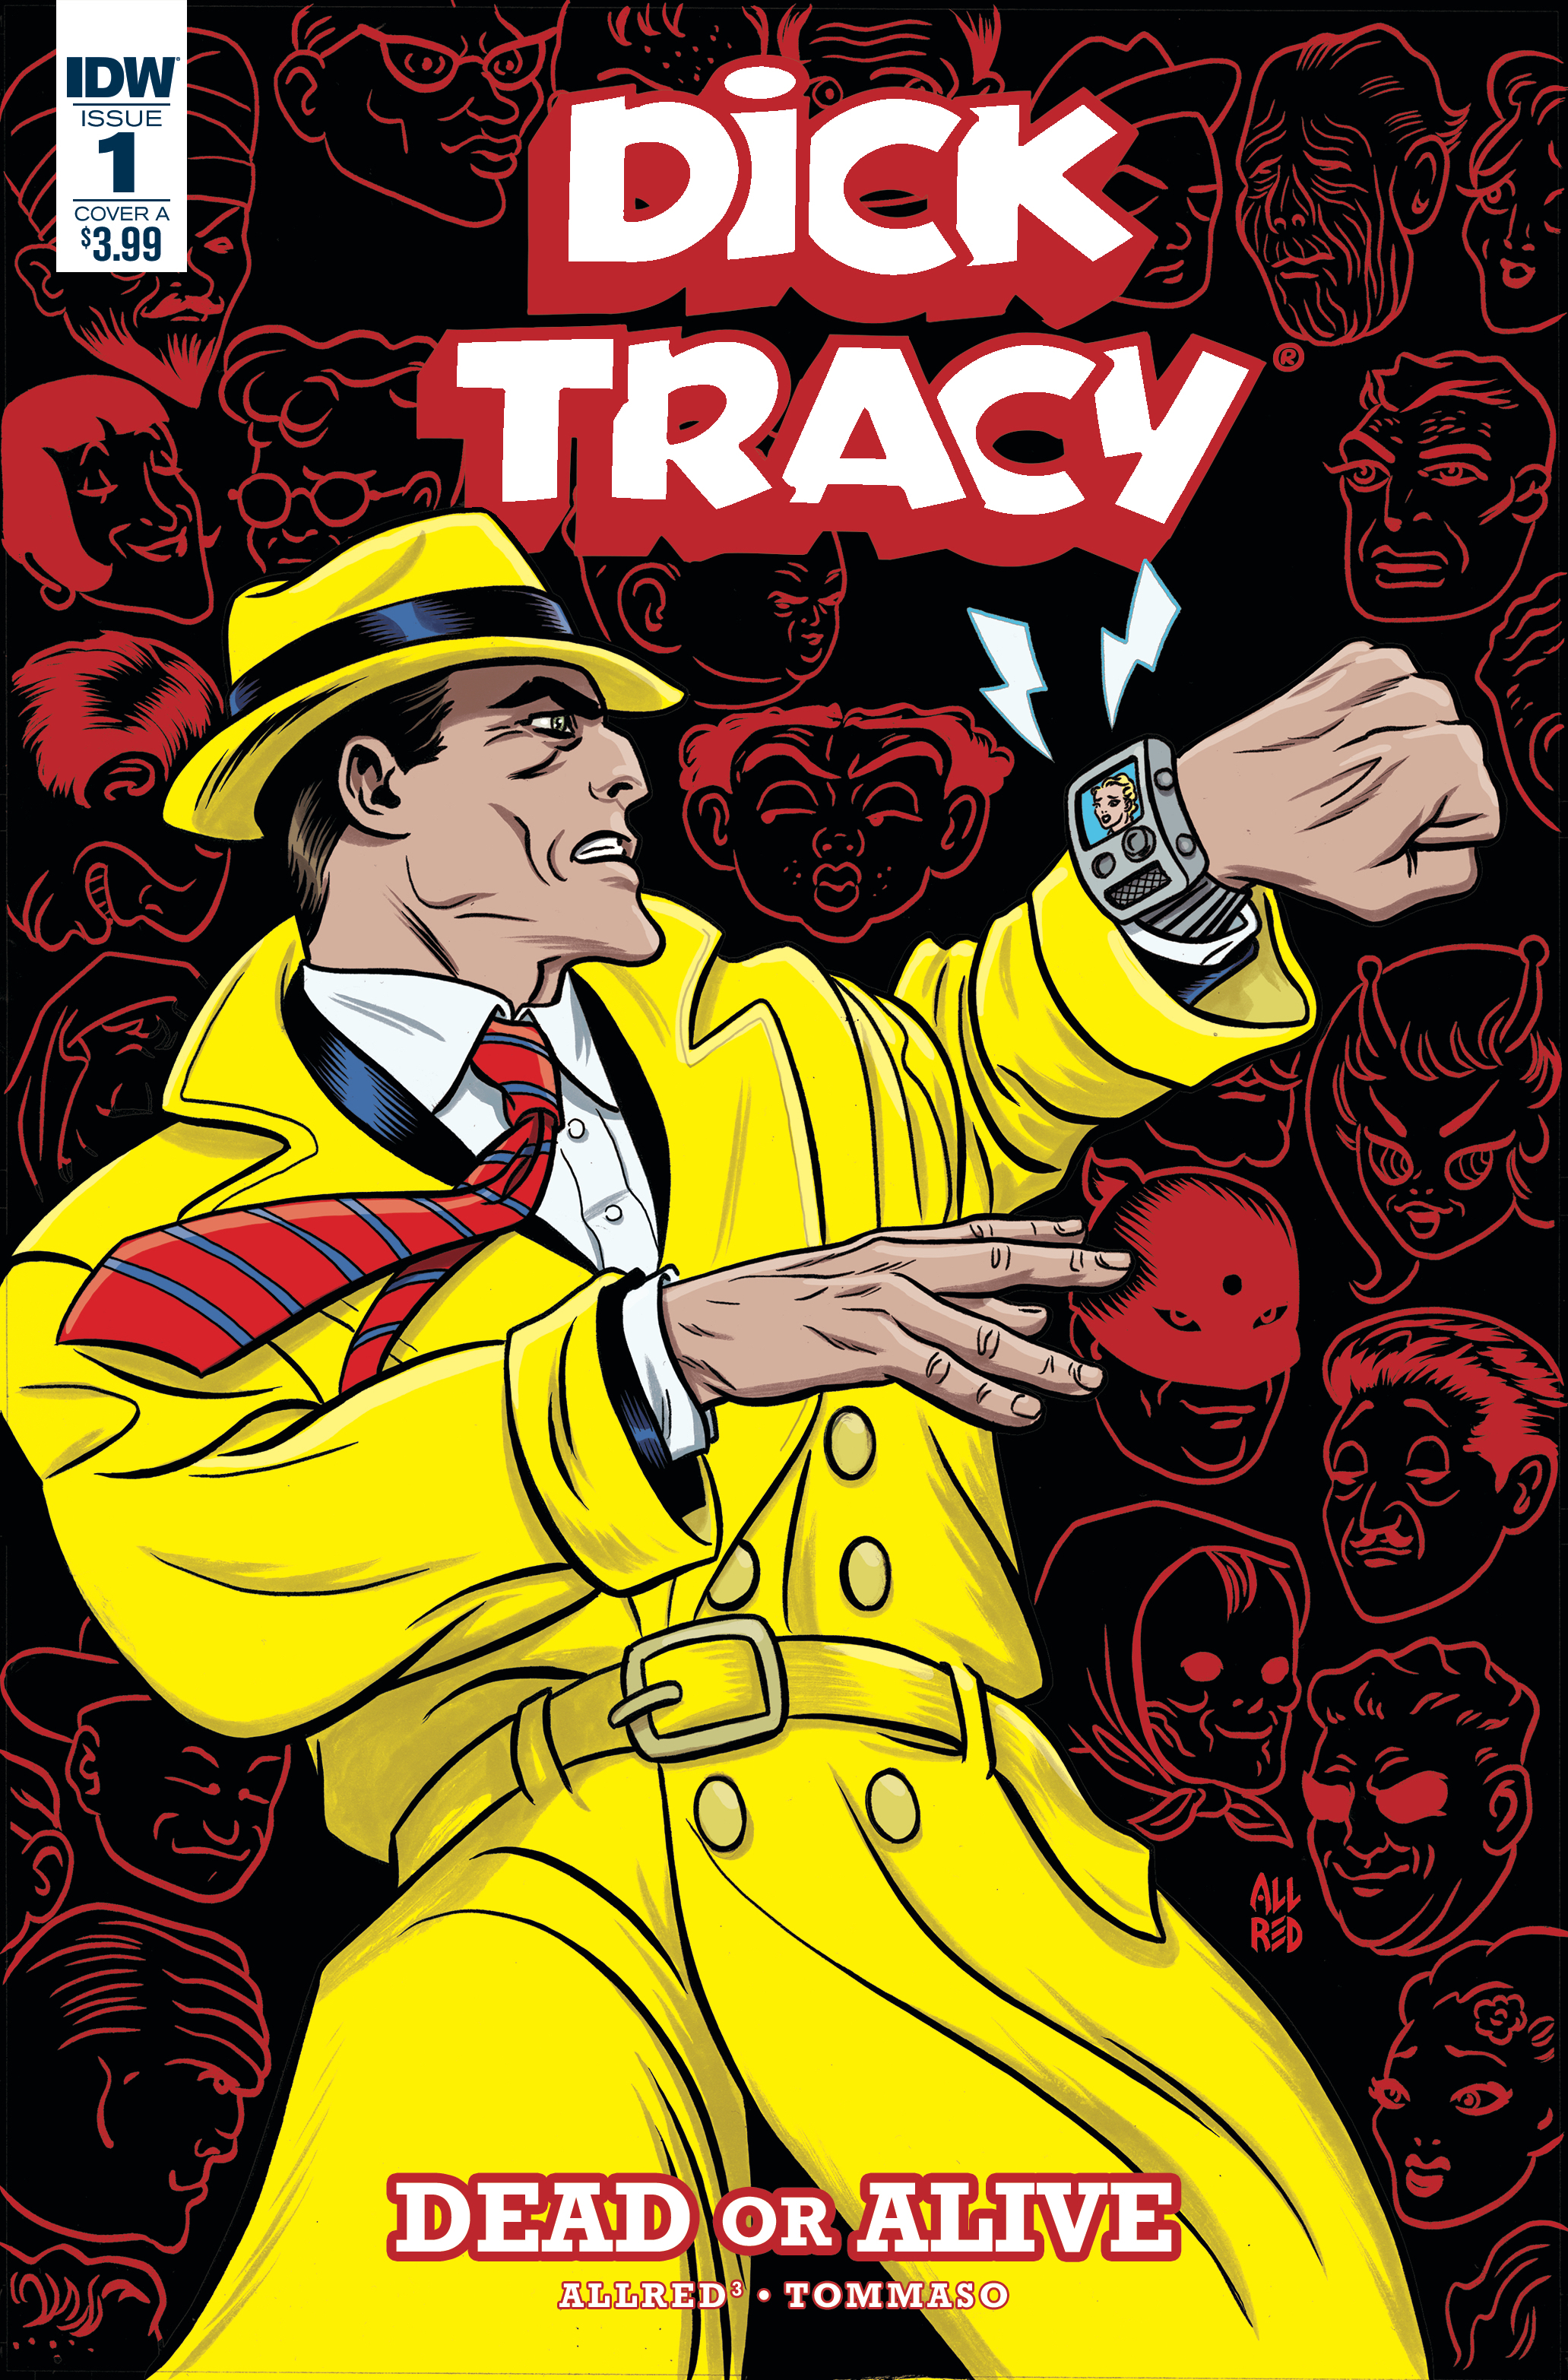 DICK TRACY DEAD OR ALIVE #1